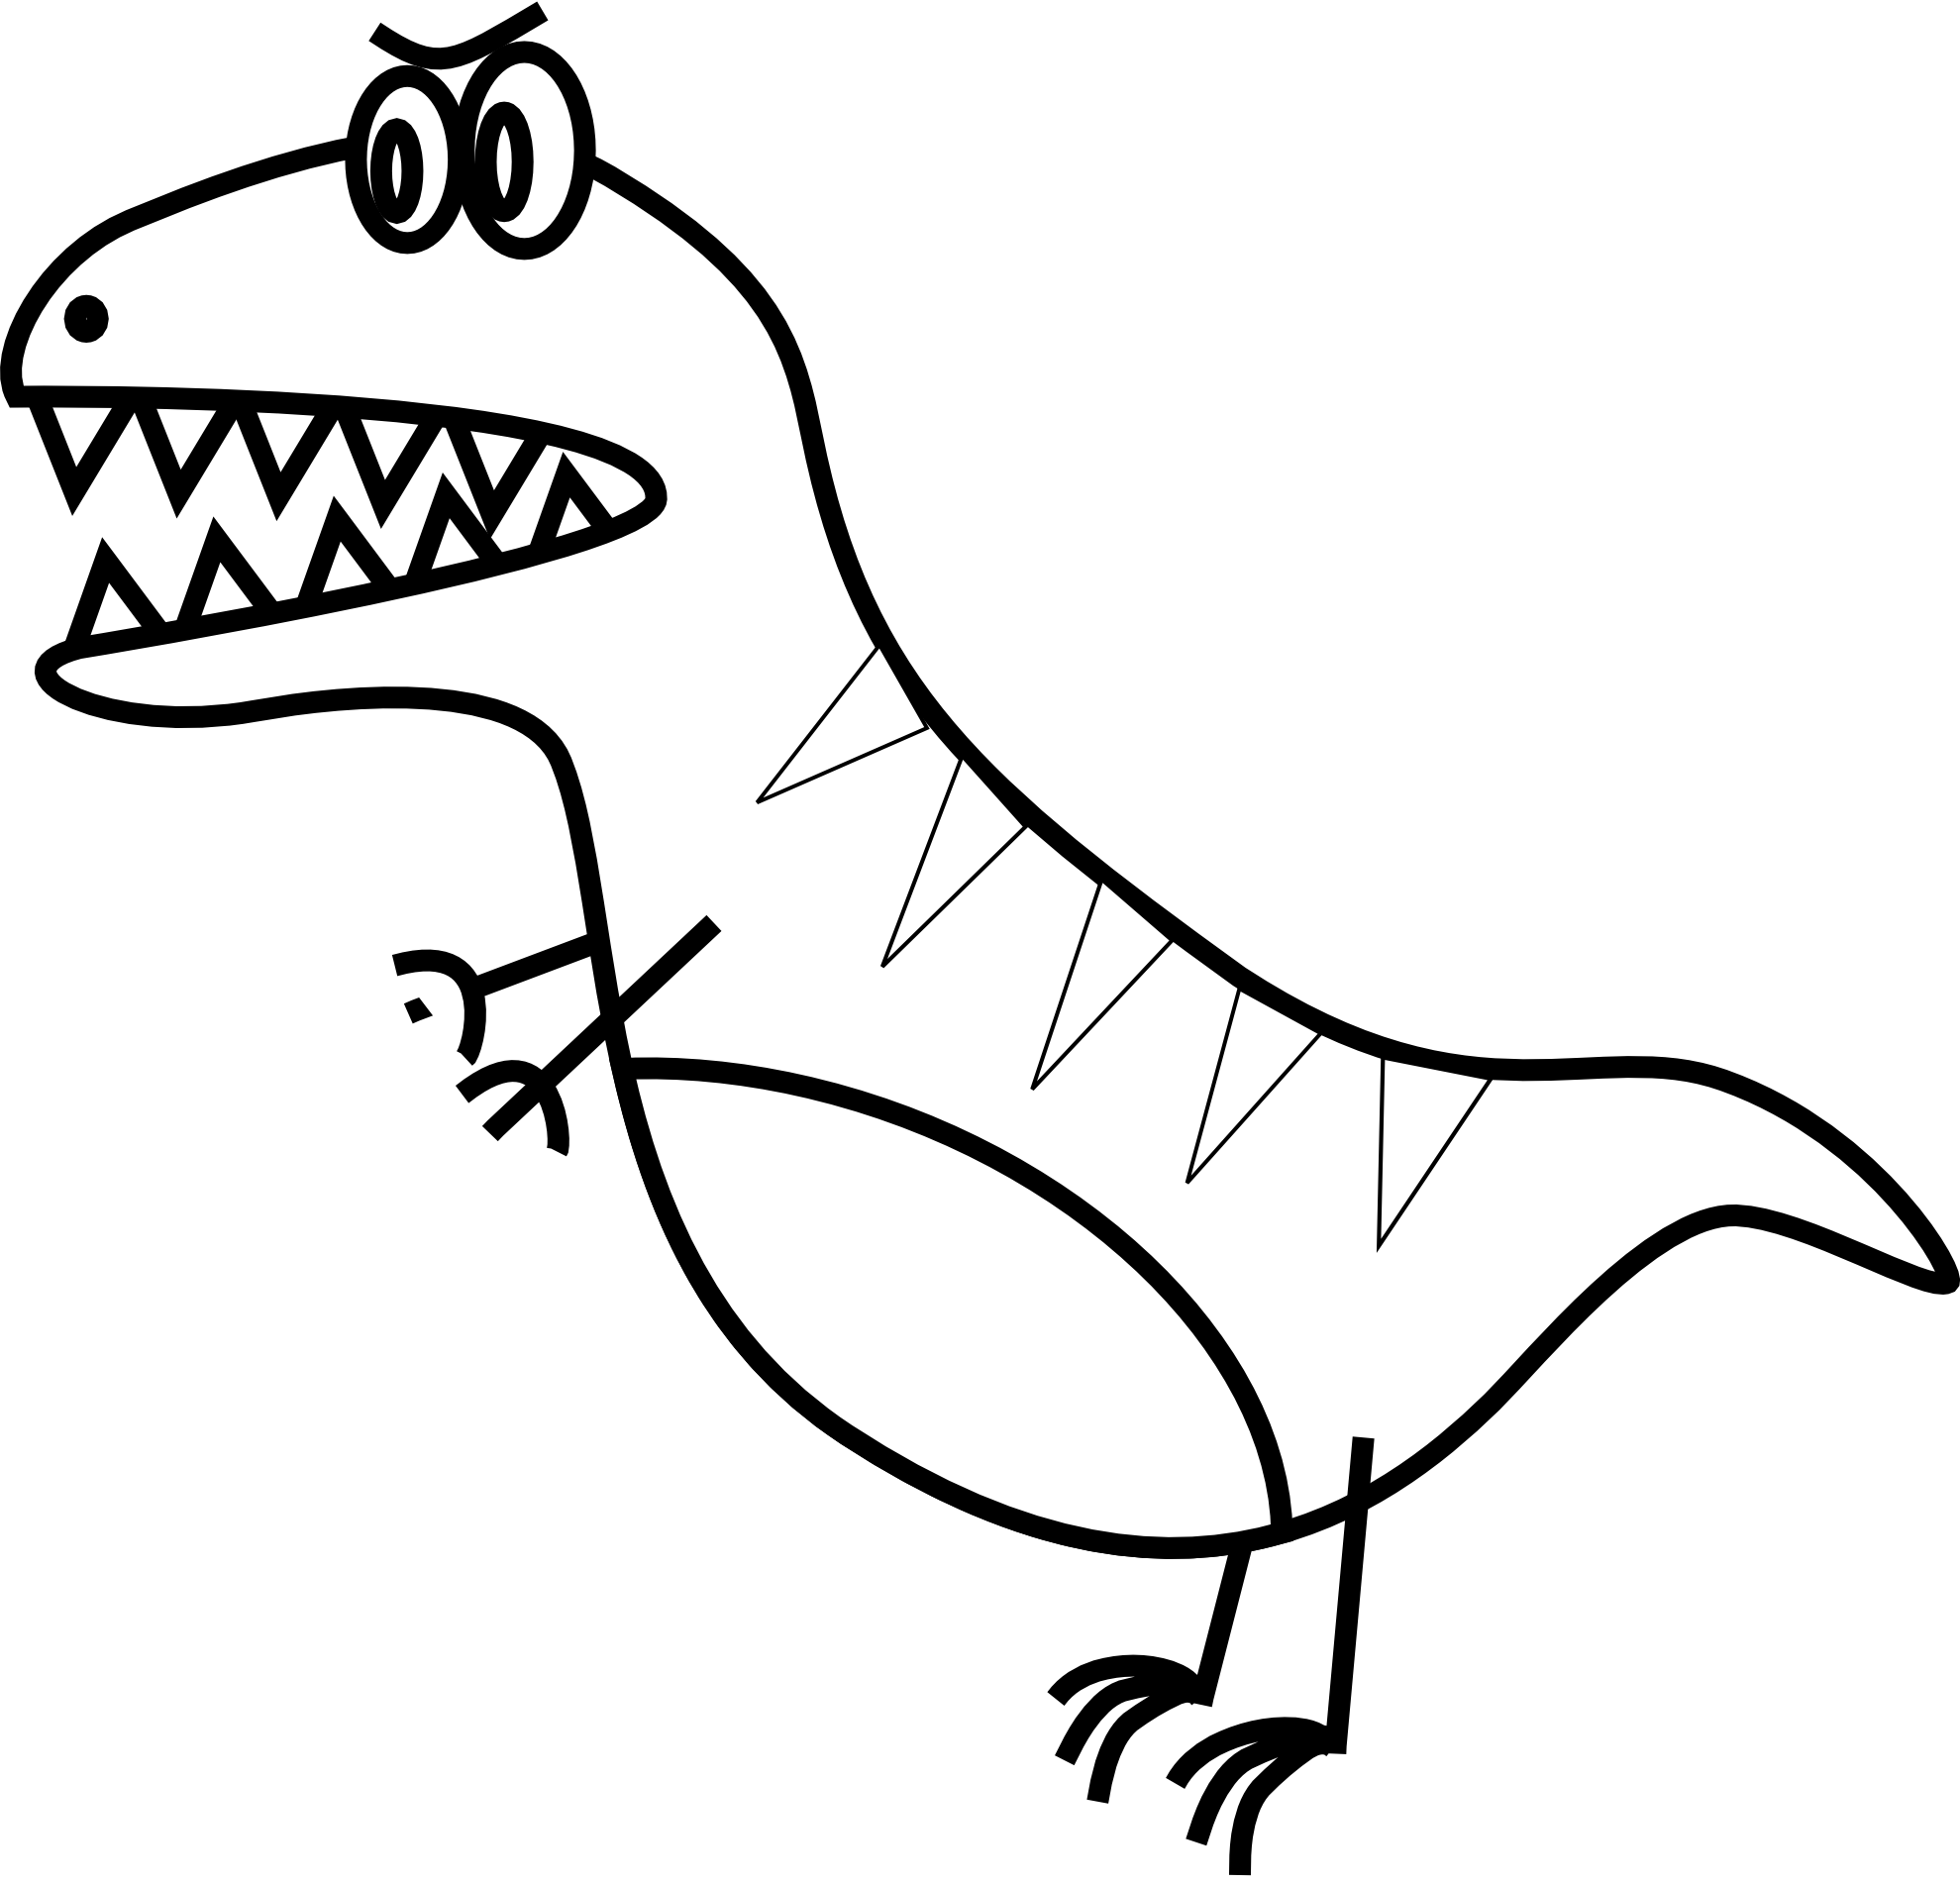 Black And White Line Drawings Of Animals : Simple line drawings of animals clipart best